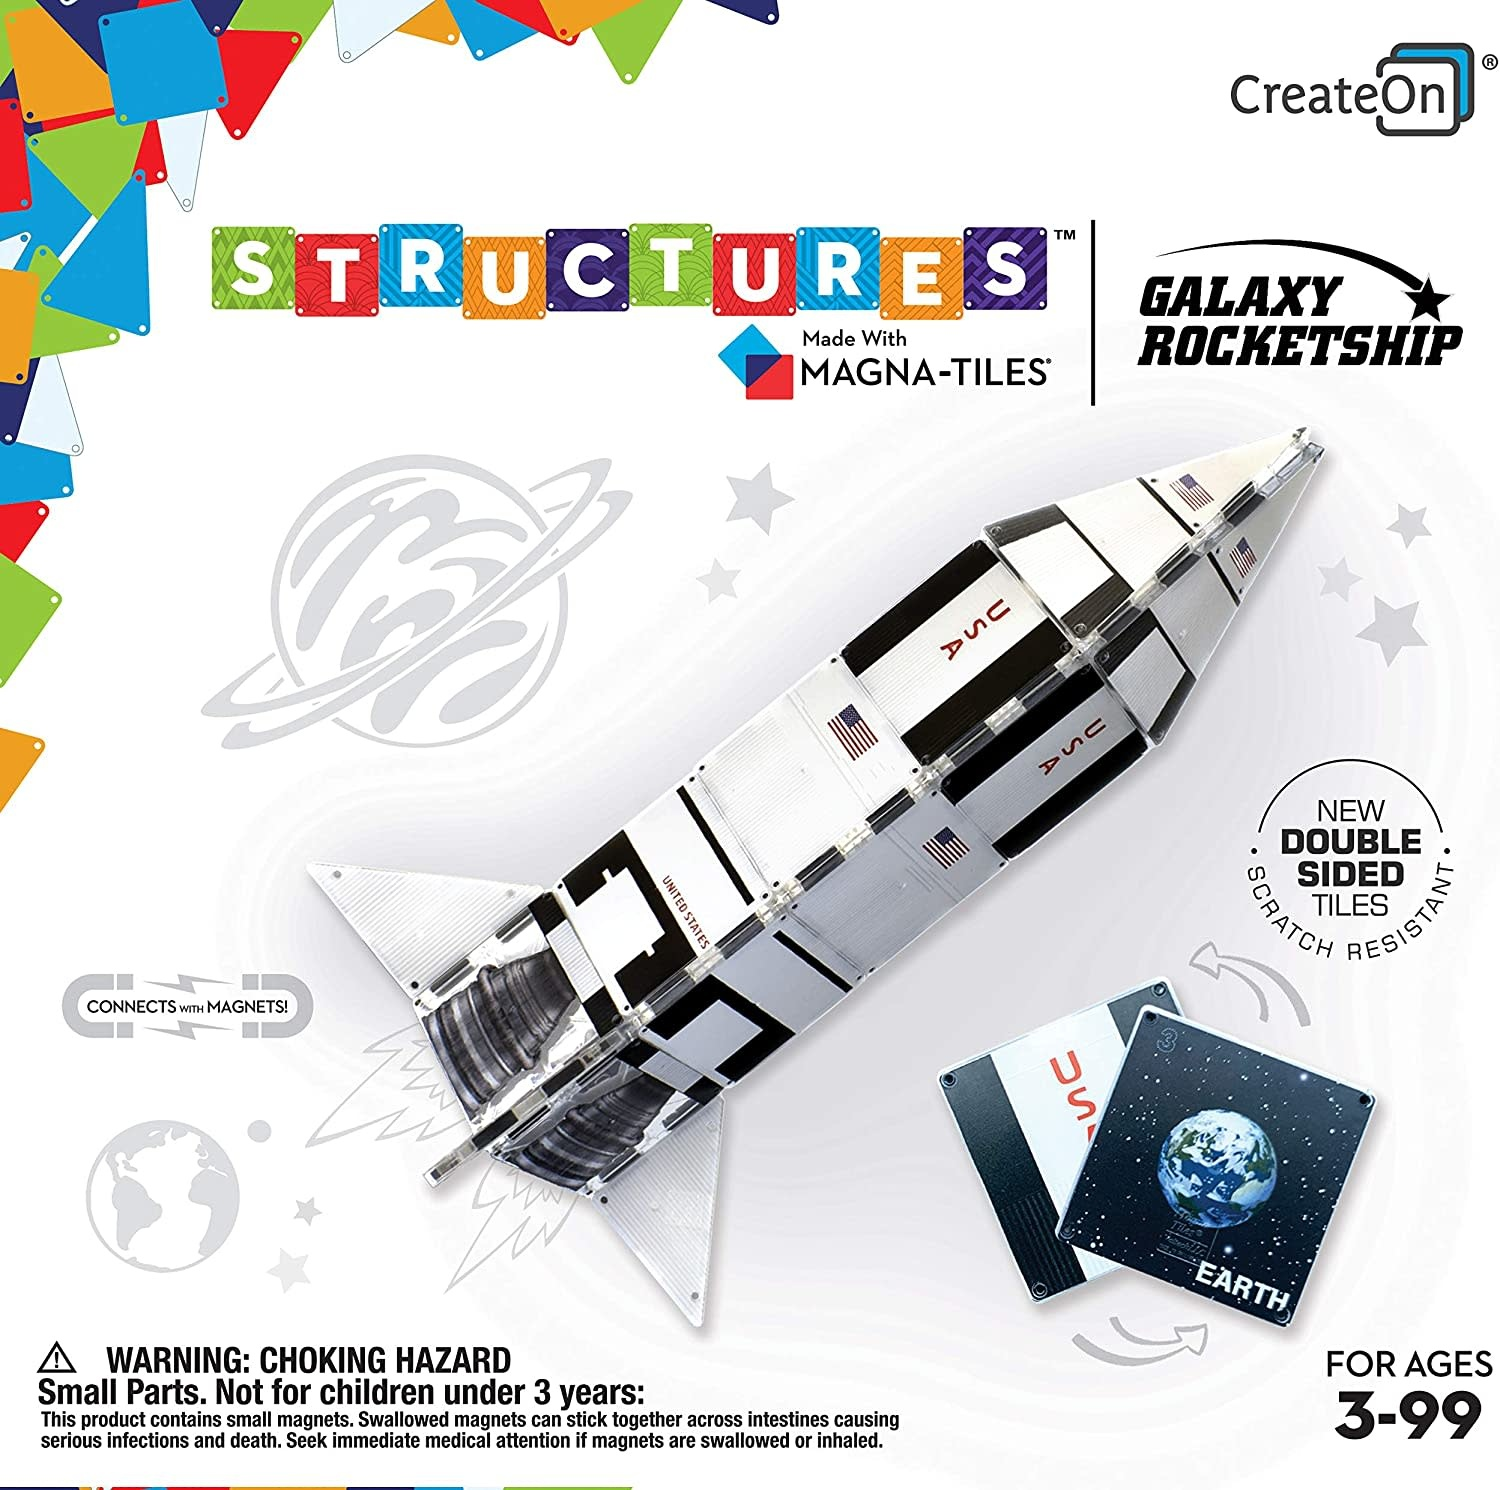 Create On CreateOn Galaxy Rocketship by Magna-Tiles Structures